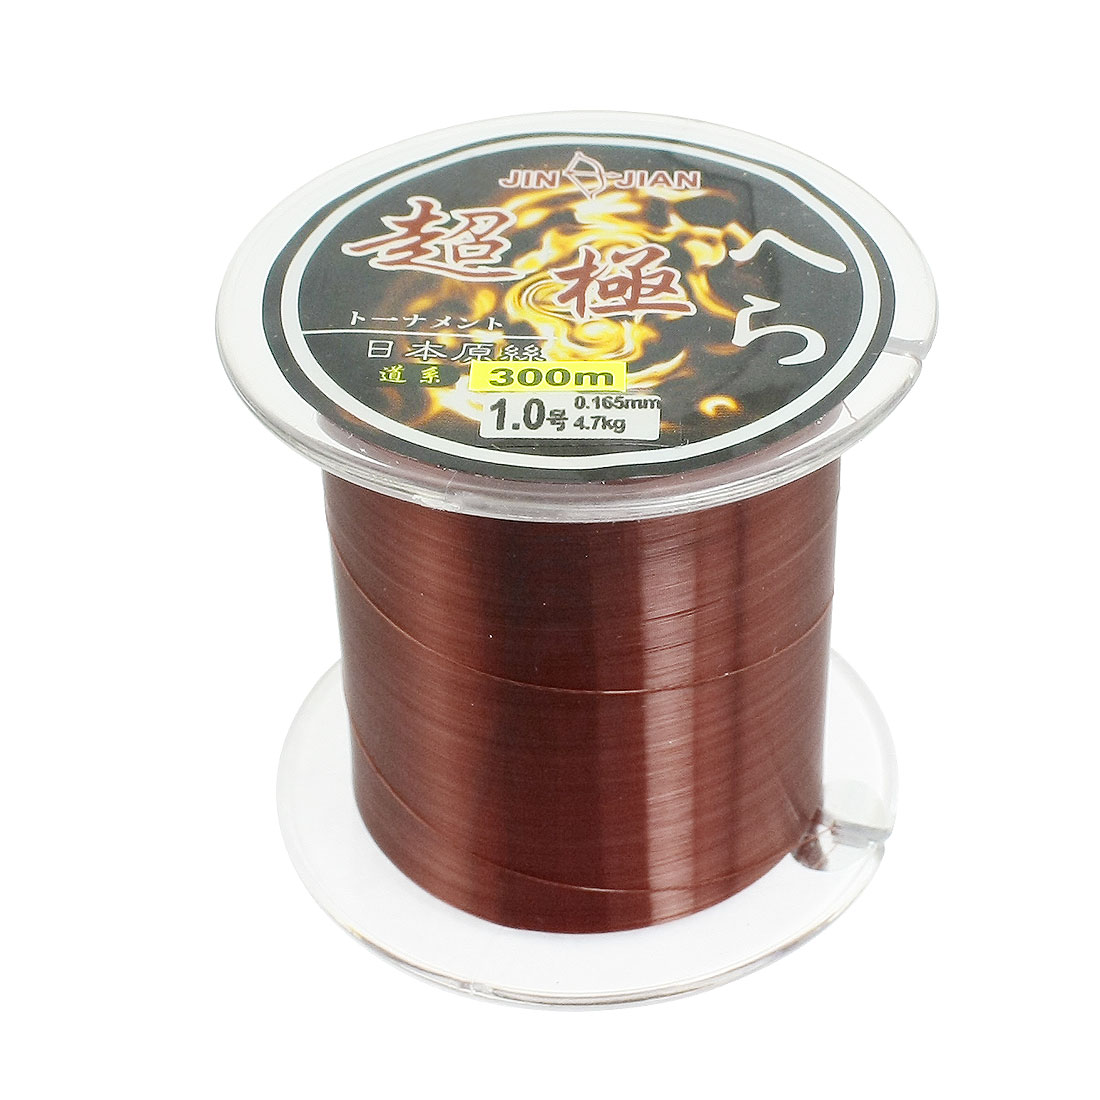 0.165mm Diameter 4.7Kg Burgundy Nylon Freshwater Fishing Spool Line 300 Meters